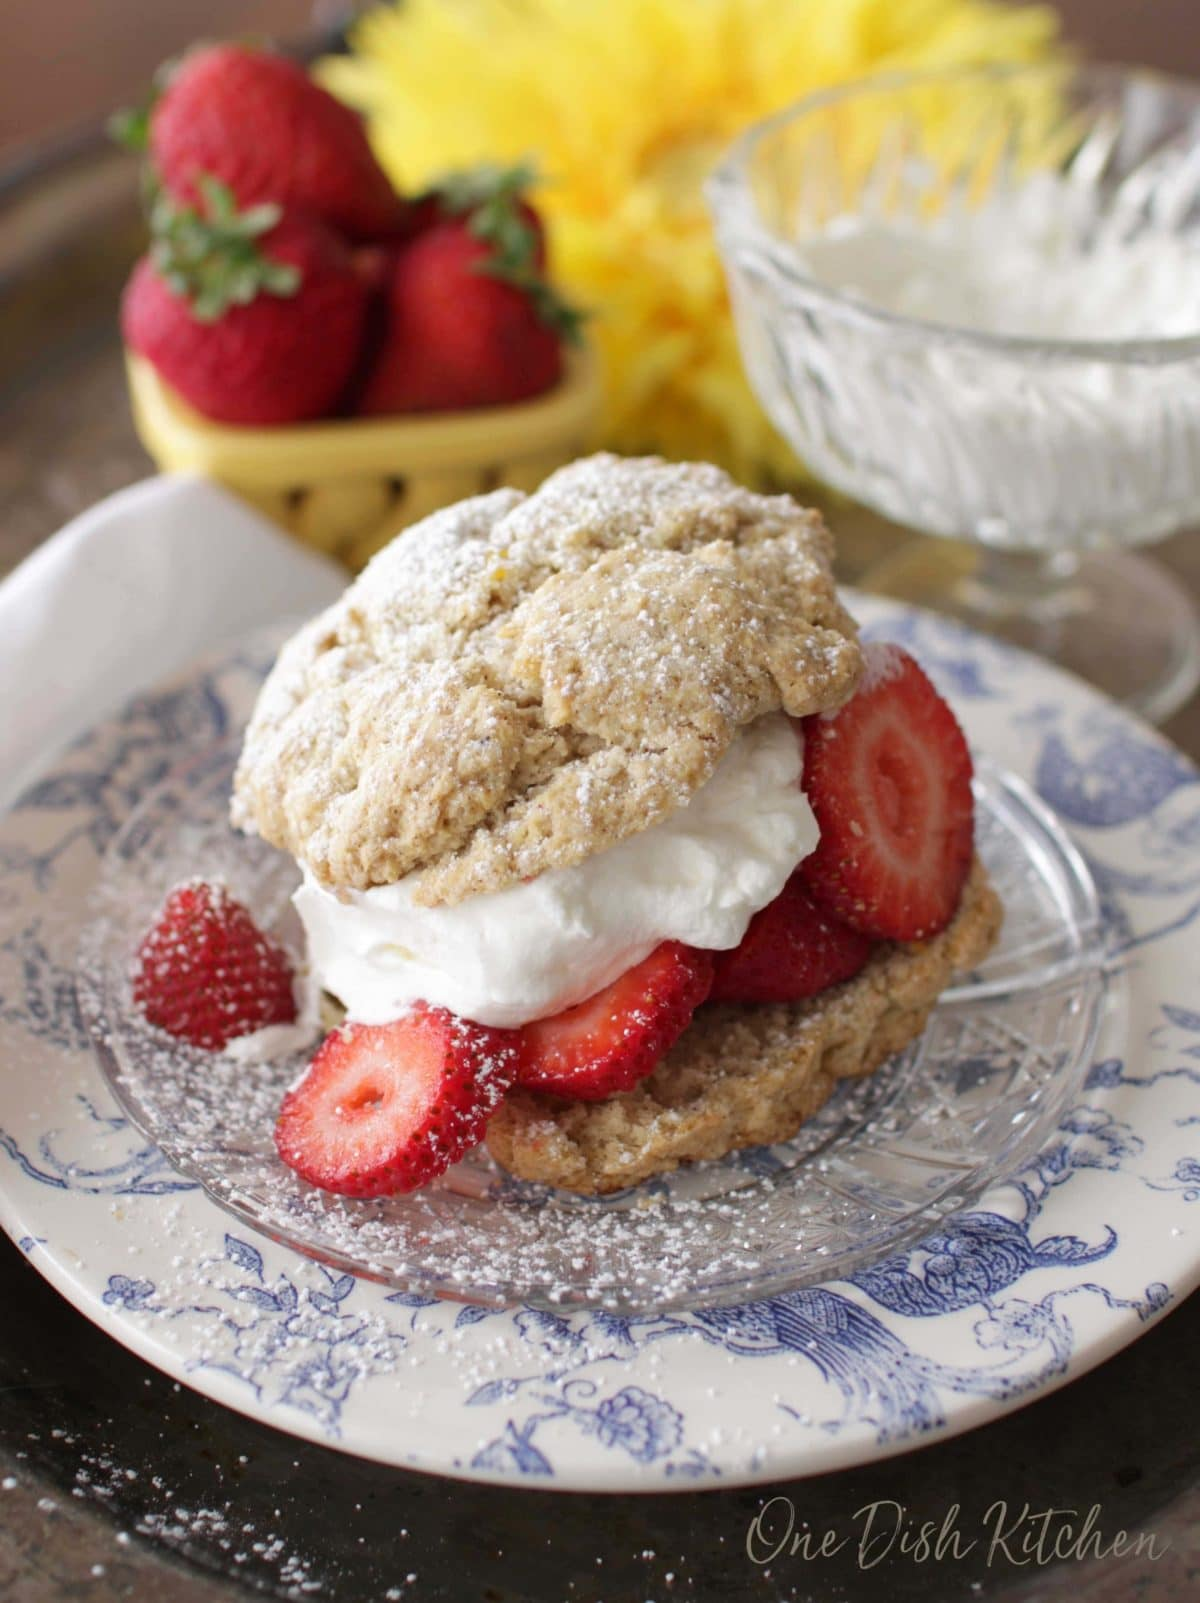 a strawberry shortcake on a plate with the top biscuit slightly falling off of the stack of strawberries.